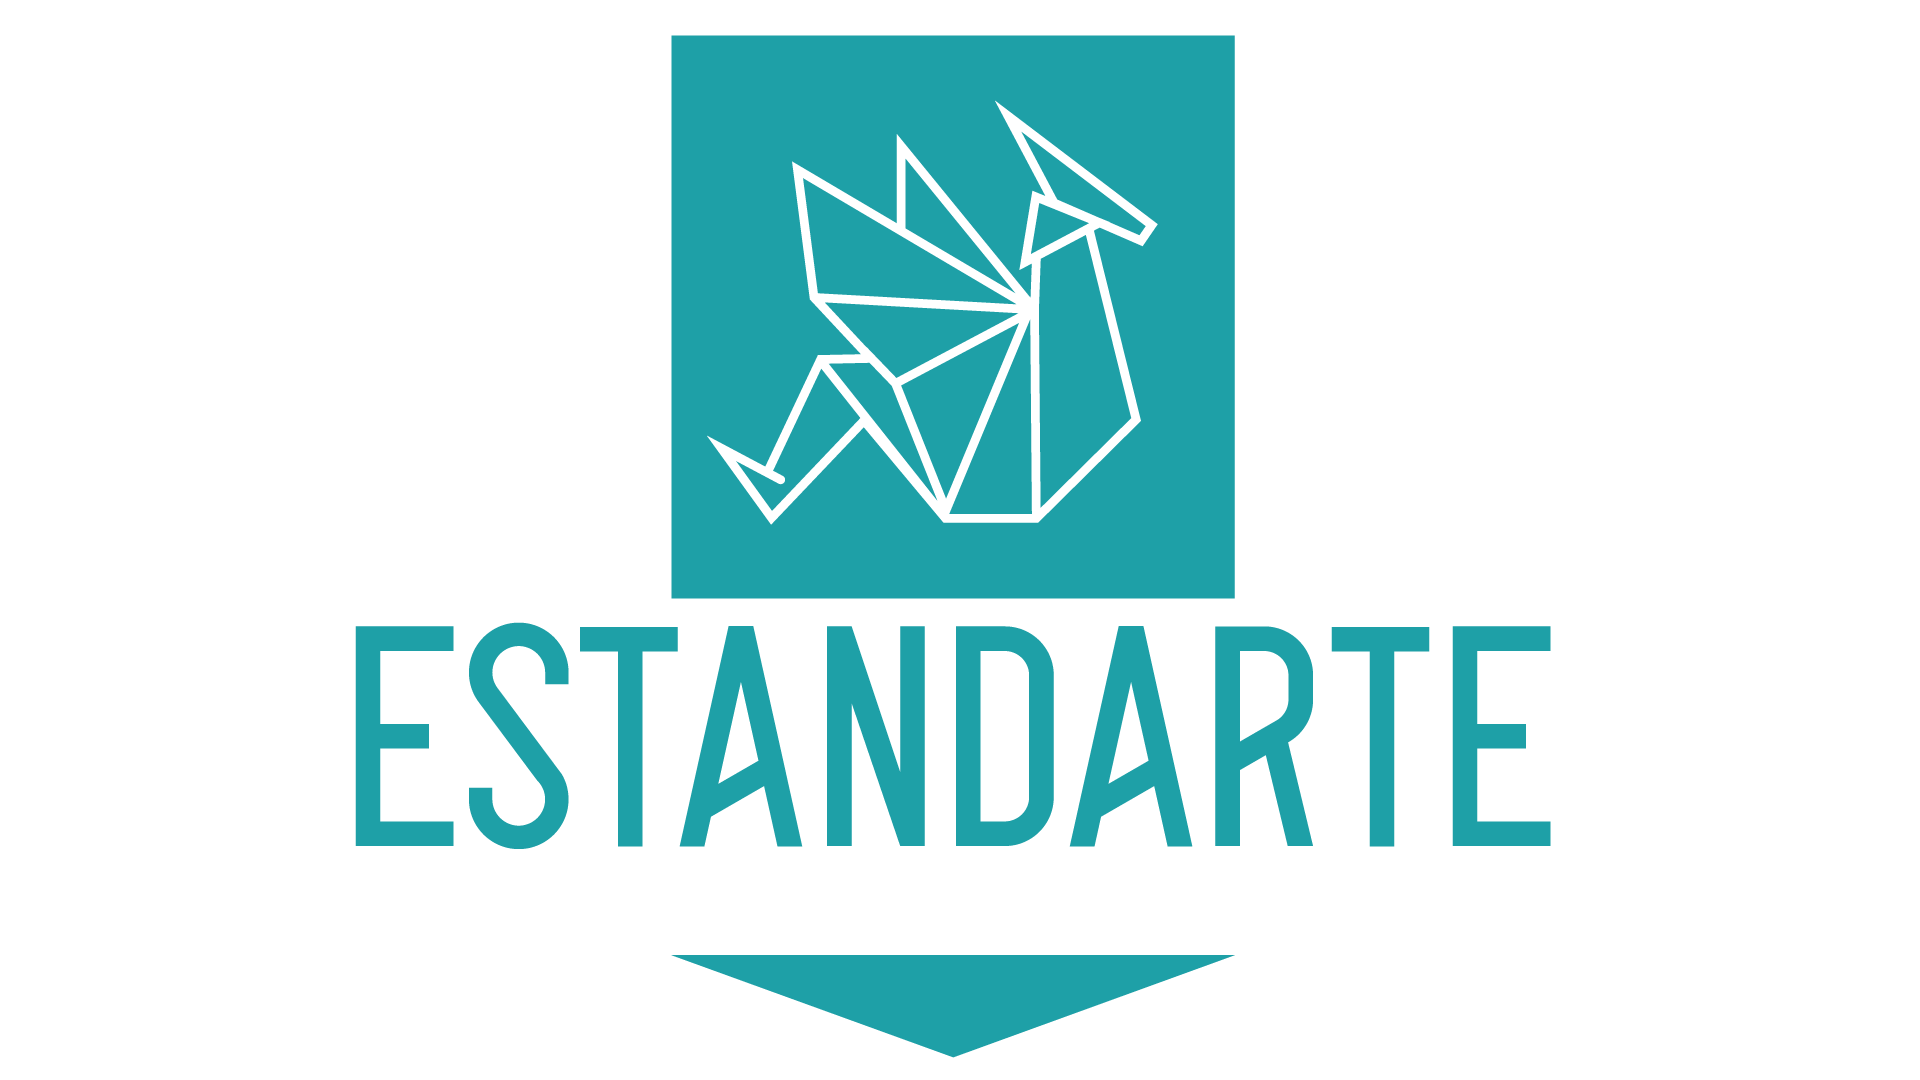 logo-estandarte-blanco